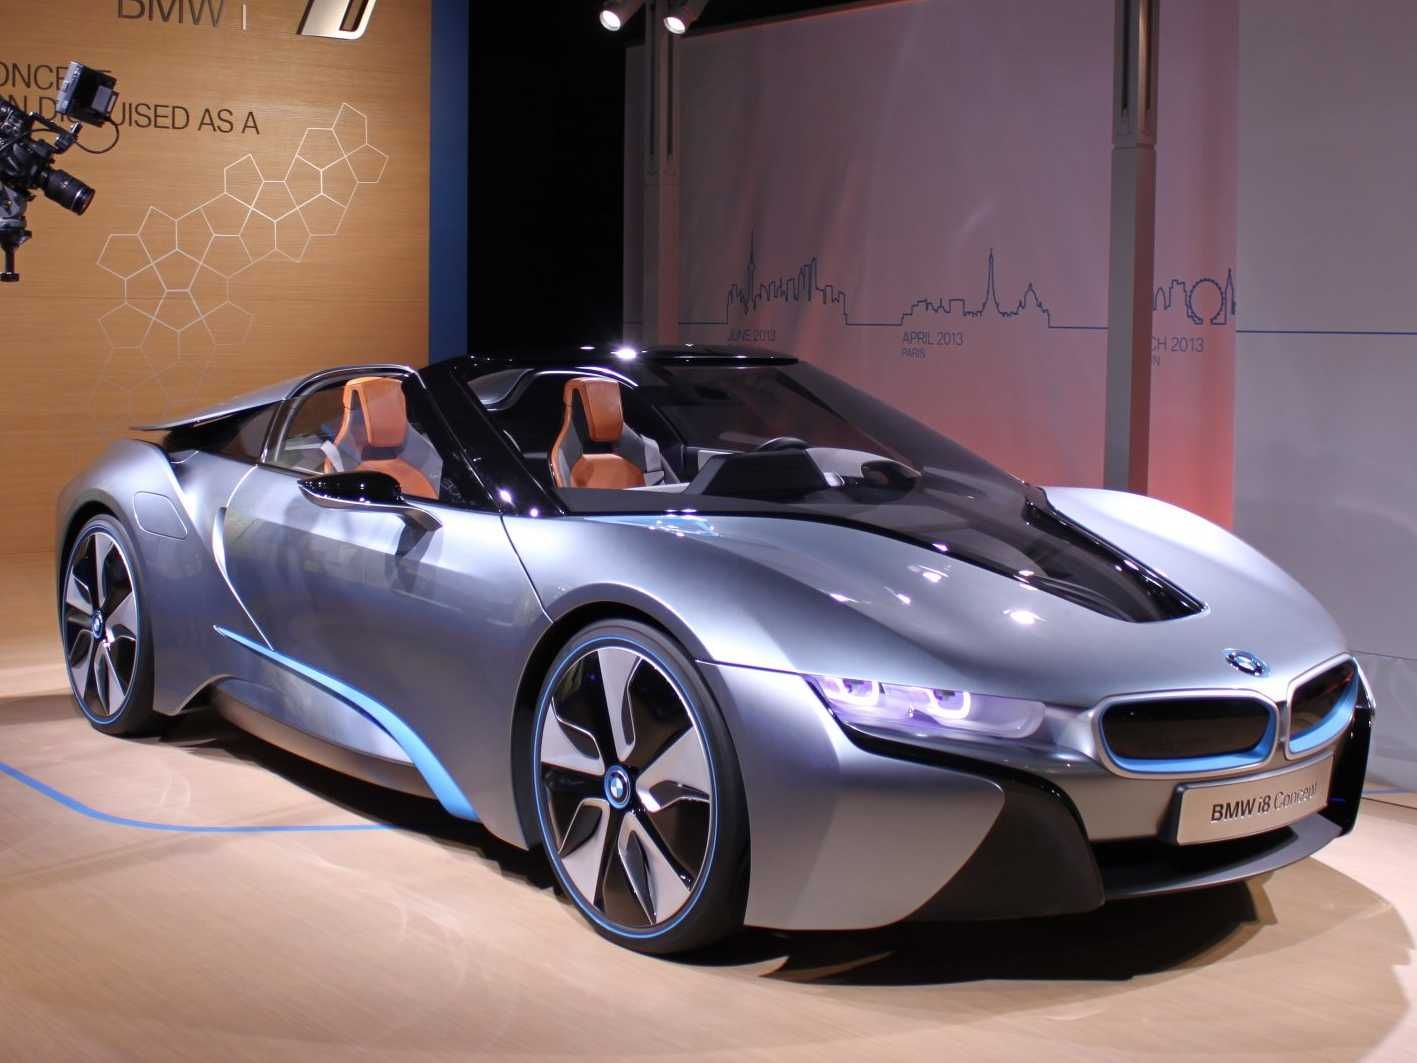 Bmw Has Awesome Cars That Will Shape The Future Of Electric